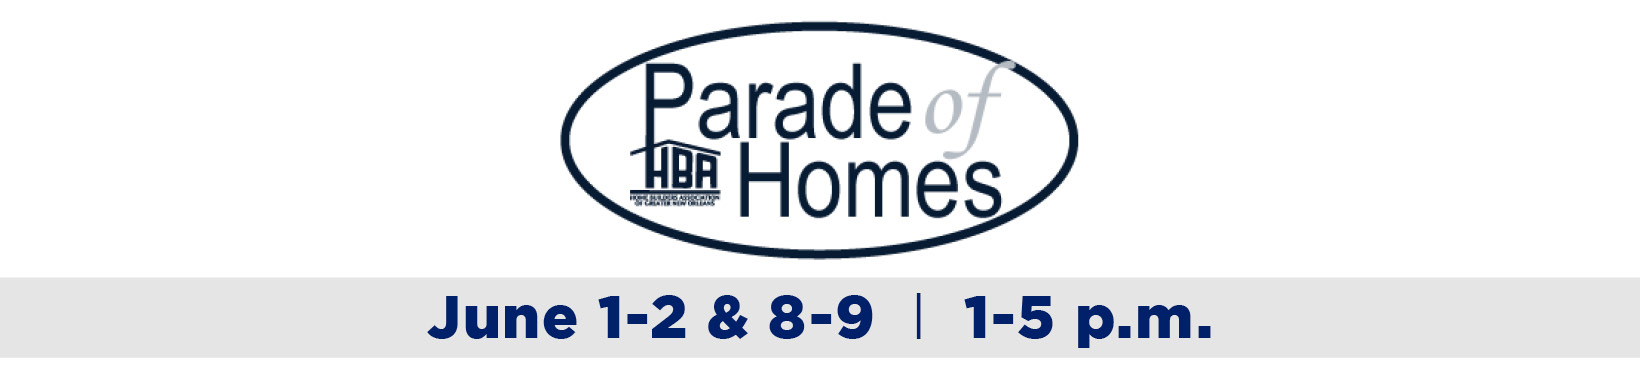 Parade of Homes 2019 Greater New Orleans HBA